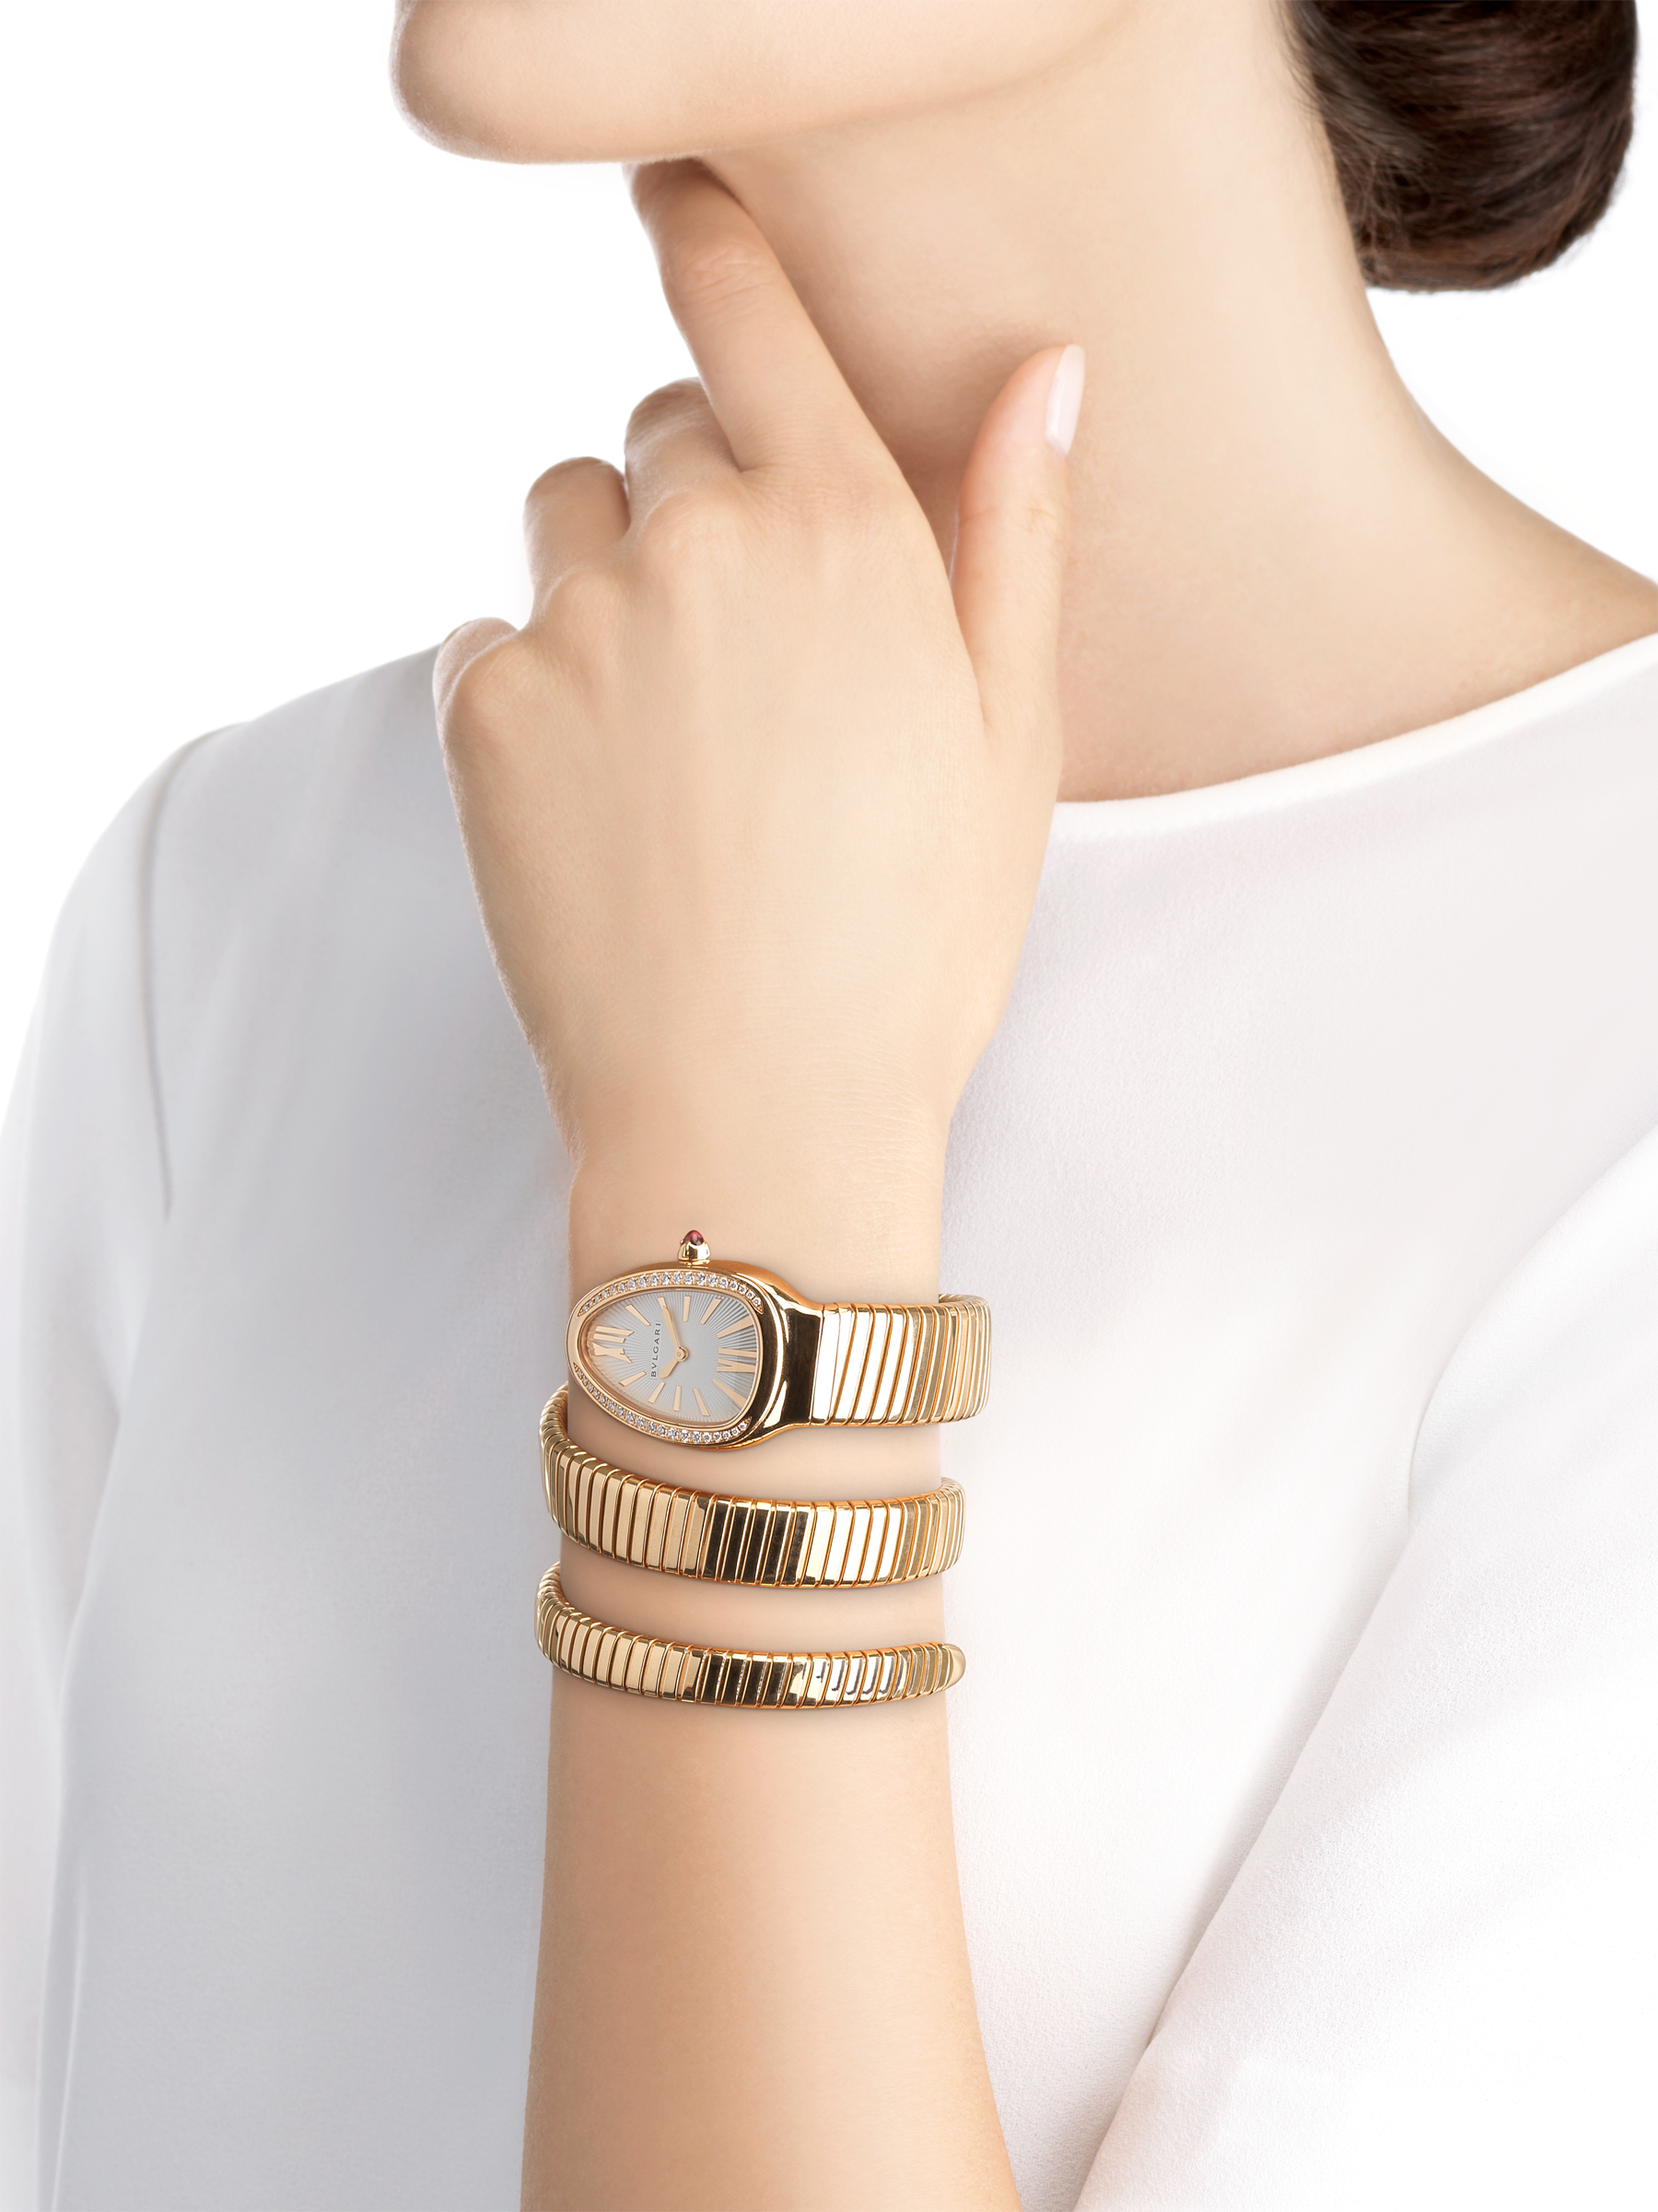 Serpenti Tubogas double spiral watch with 18 kt rose gold case set with brilliant-cut diamonds, silver opaline dial and 18 kt rose gold bracelet 103002 image 4